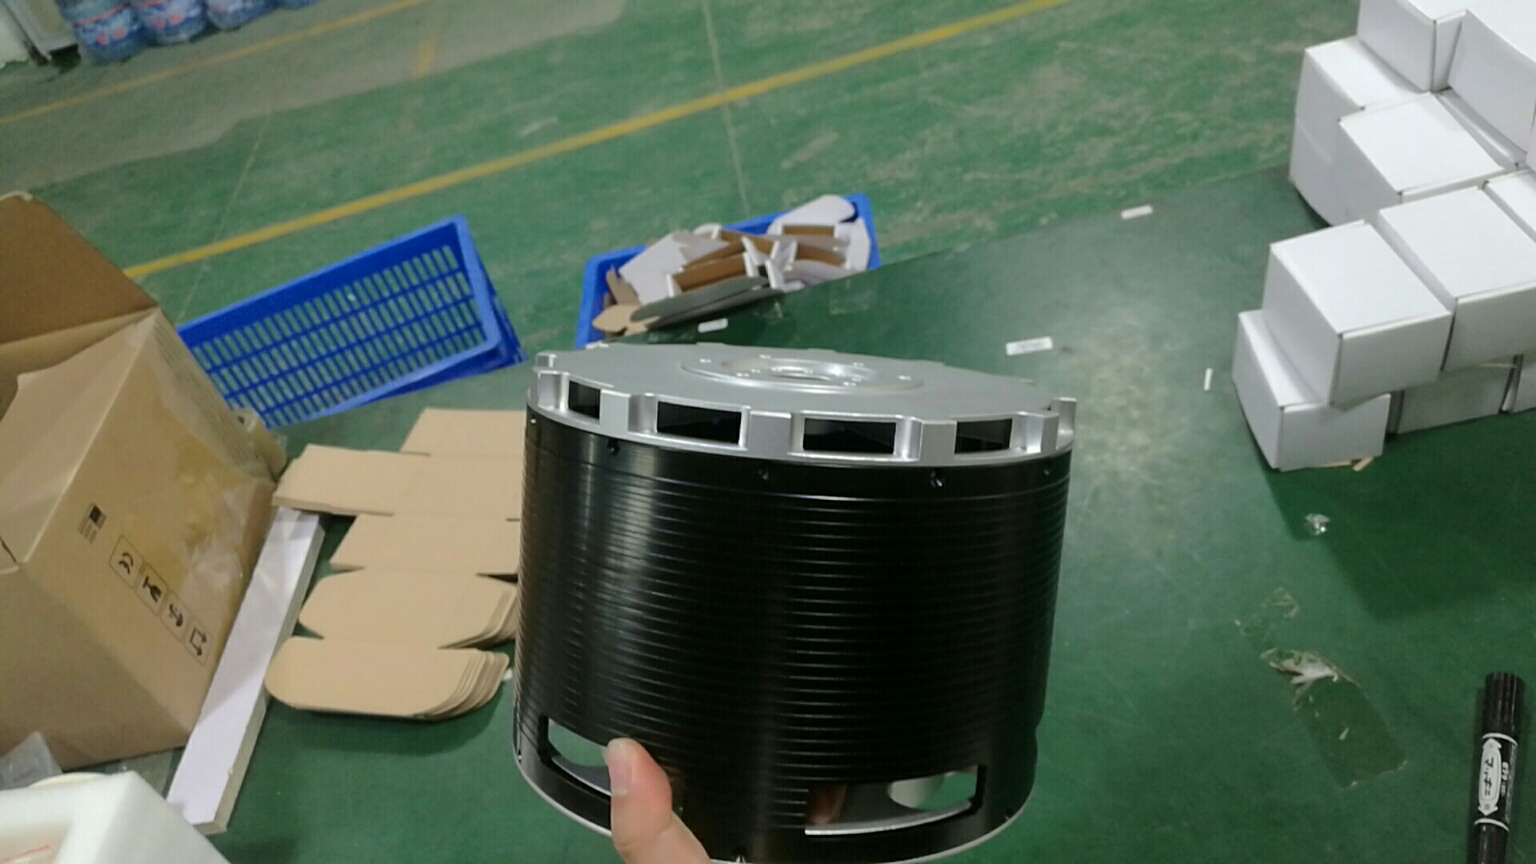 MP154120 100KW brushless Halbach Array motor